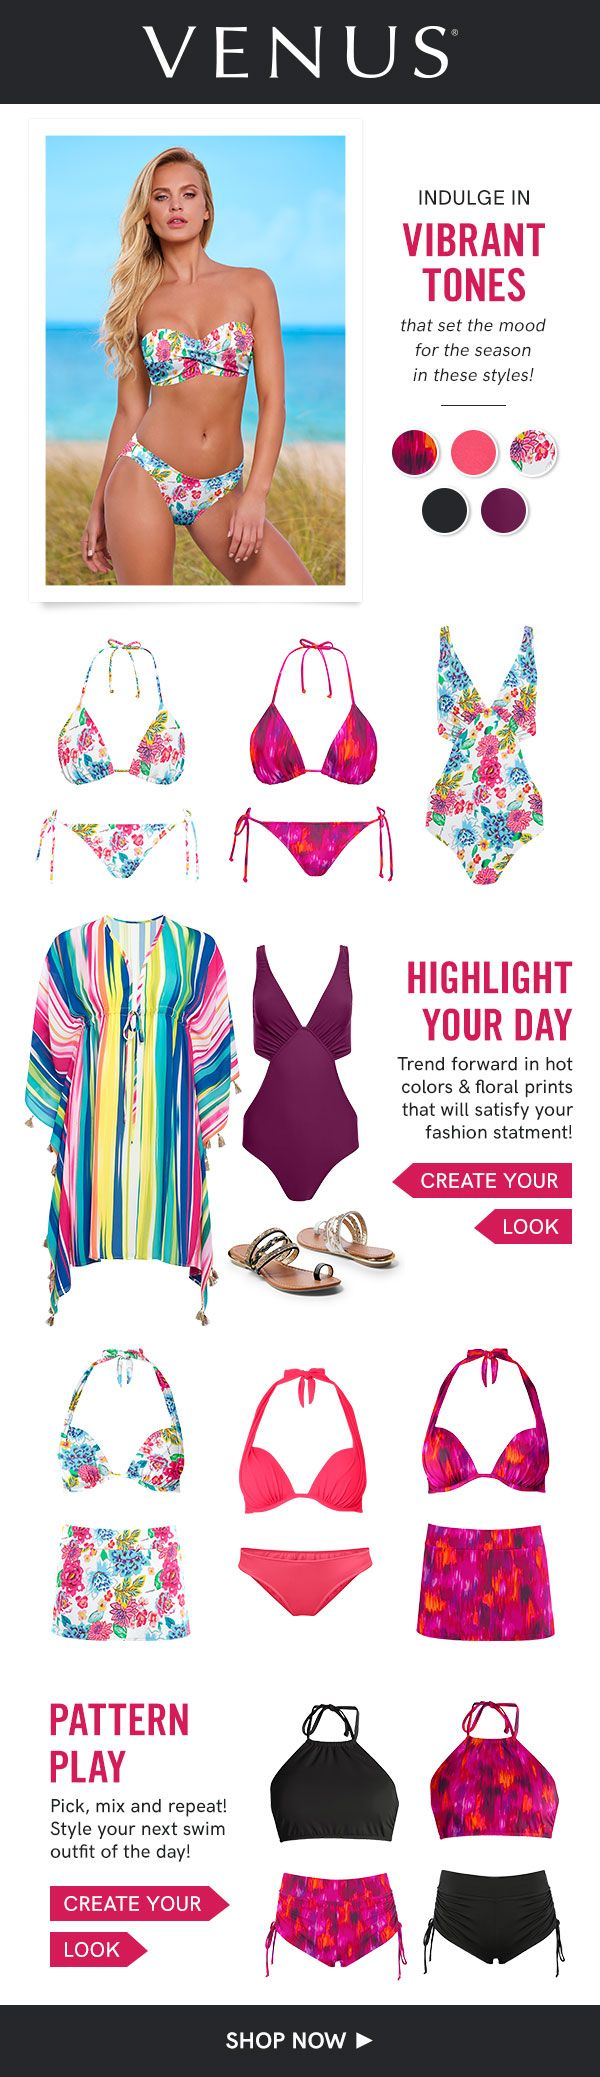 Pick, mix and repeat! Style your next swim outfit of the day. #venusswimwear #swimwear